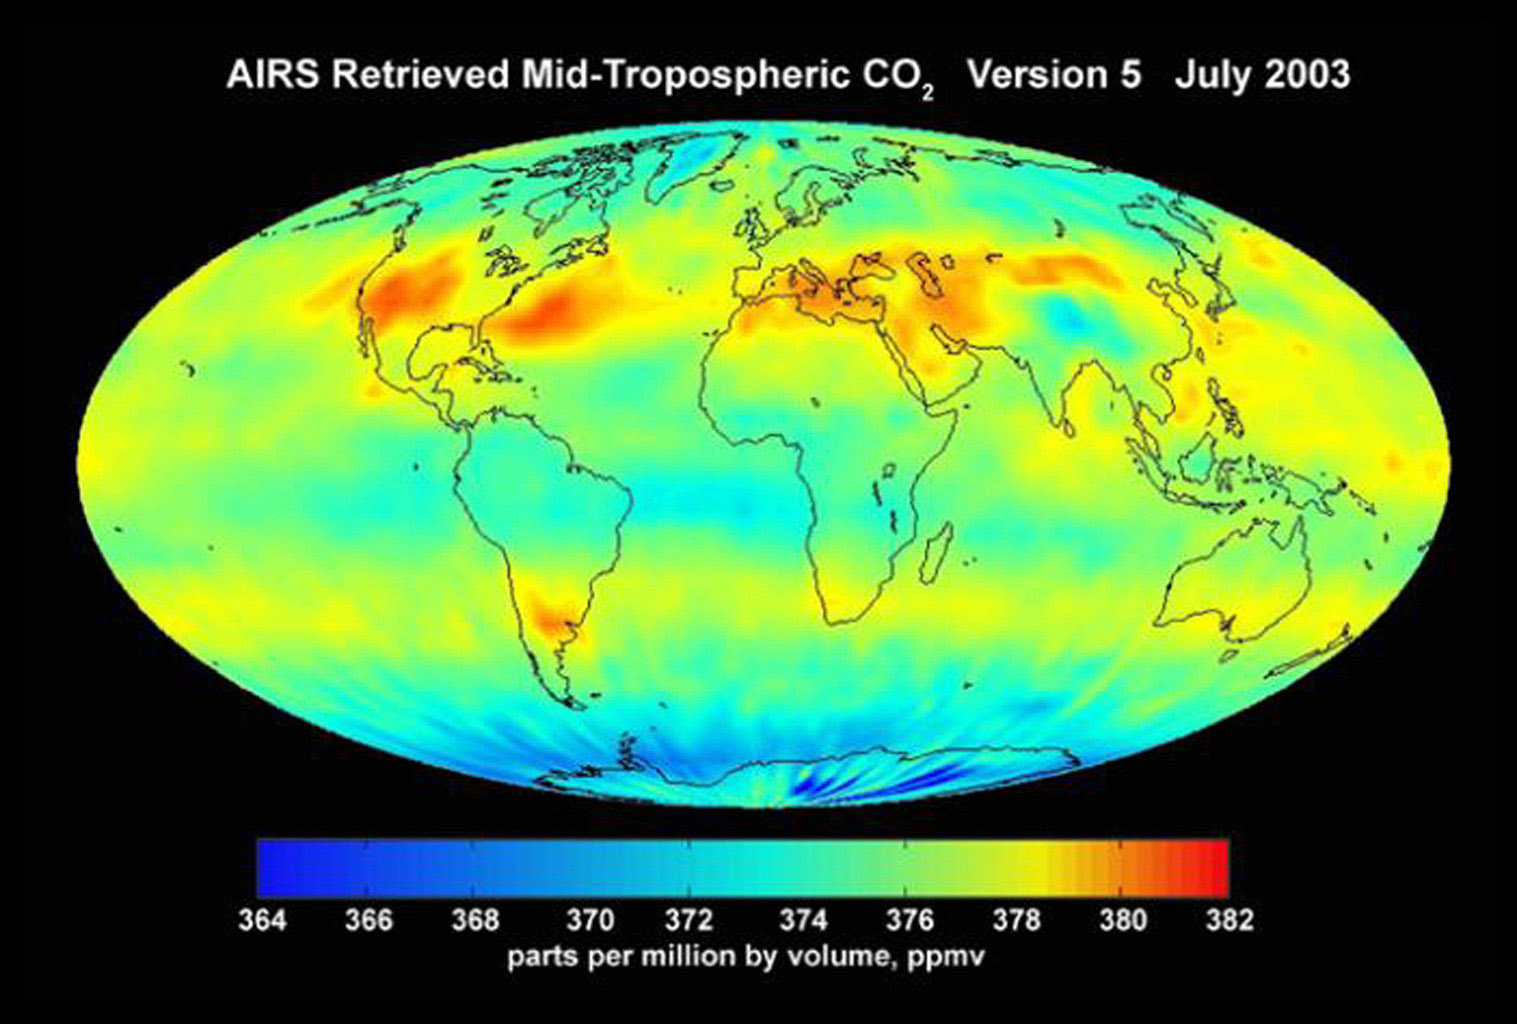 AIRS mid-tropospheric CO2, Version 5, July 2003 from the Atmospheric Infrared Sounder (AIRS) instrument onboard NASA's Aqua satellite.